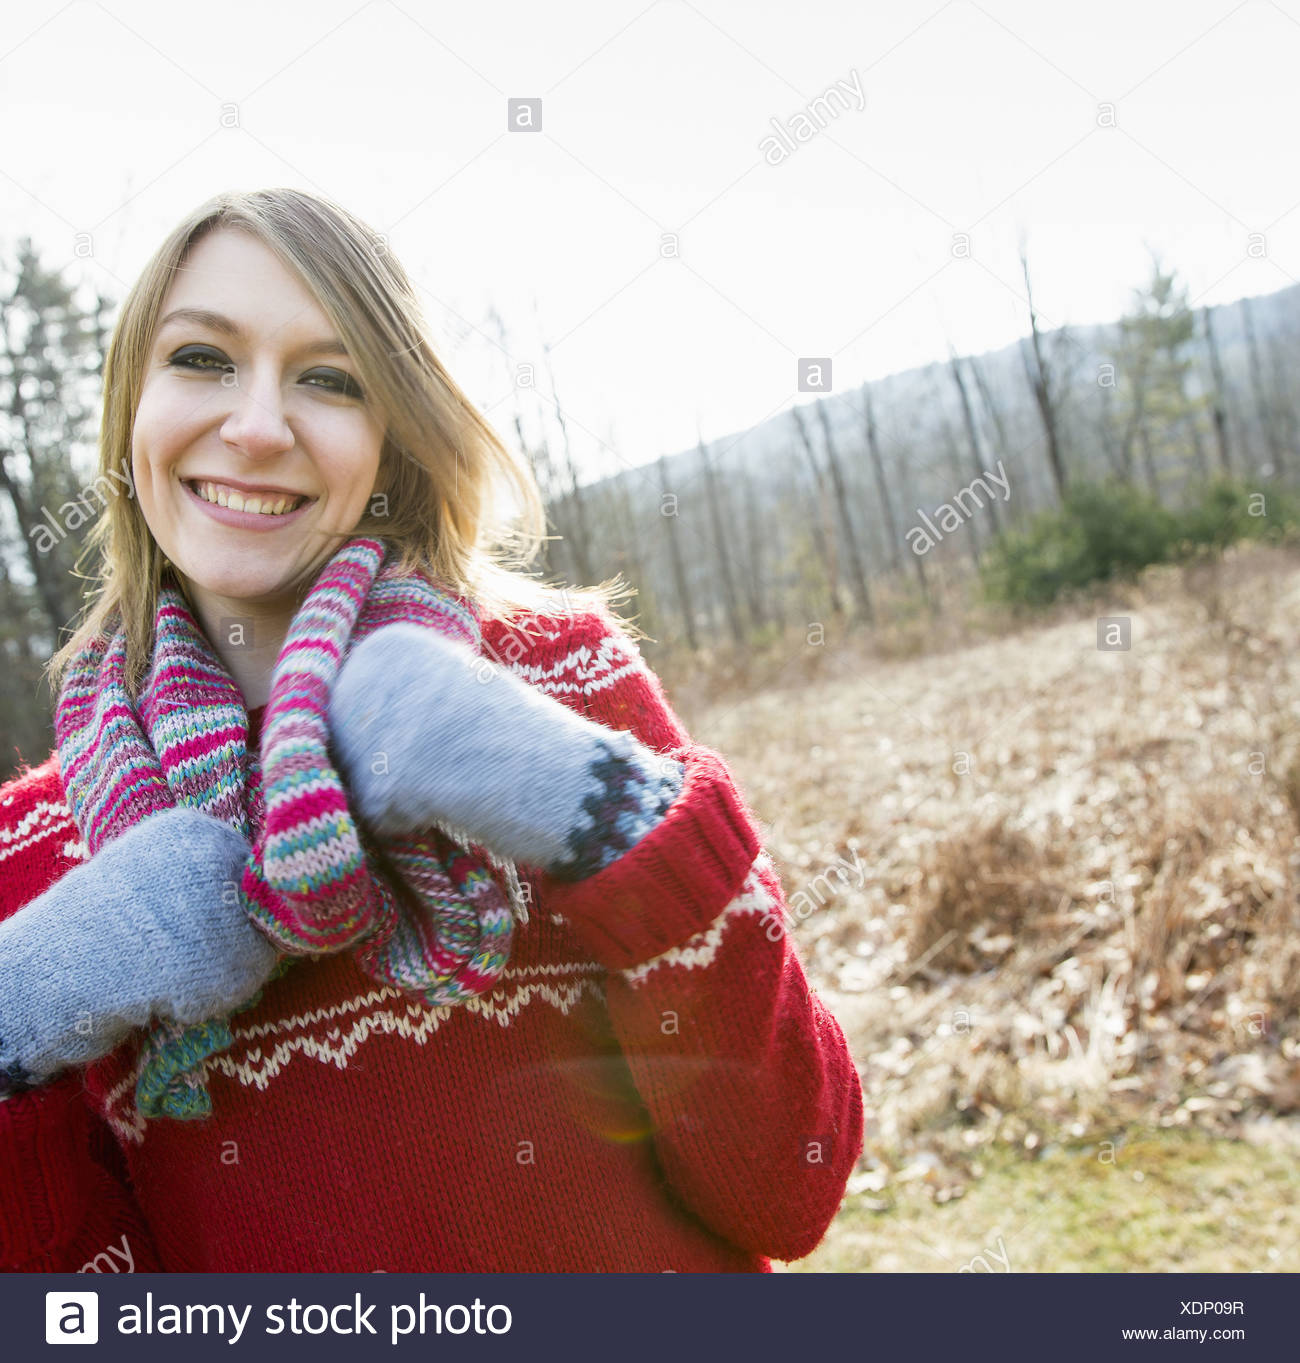 A woman wearing a knitted scarf and woollen mittens outdoors on a winter day. - Stock Image